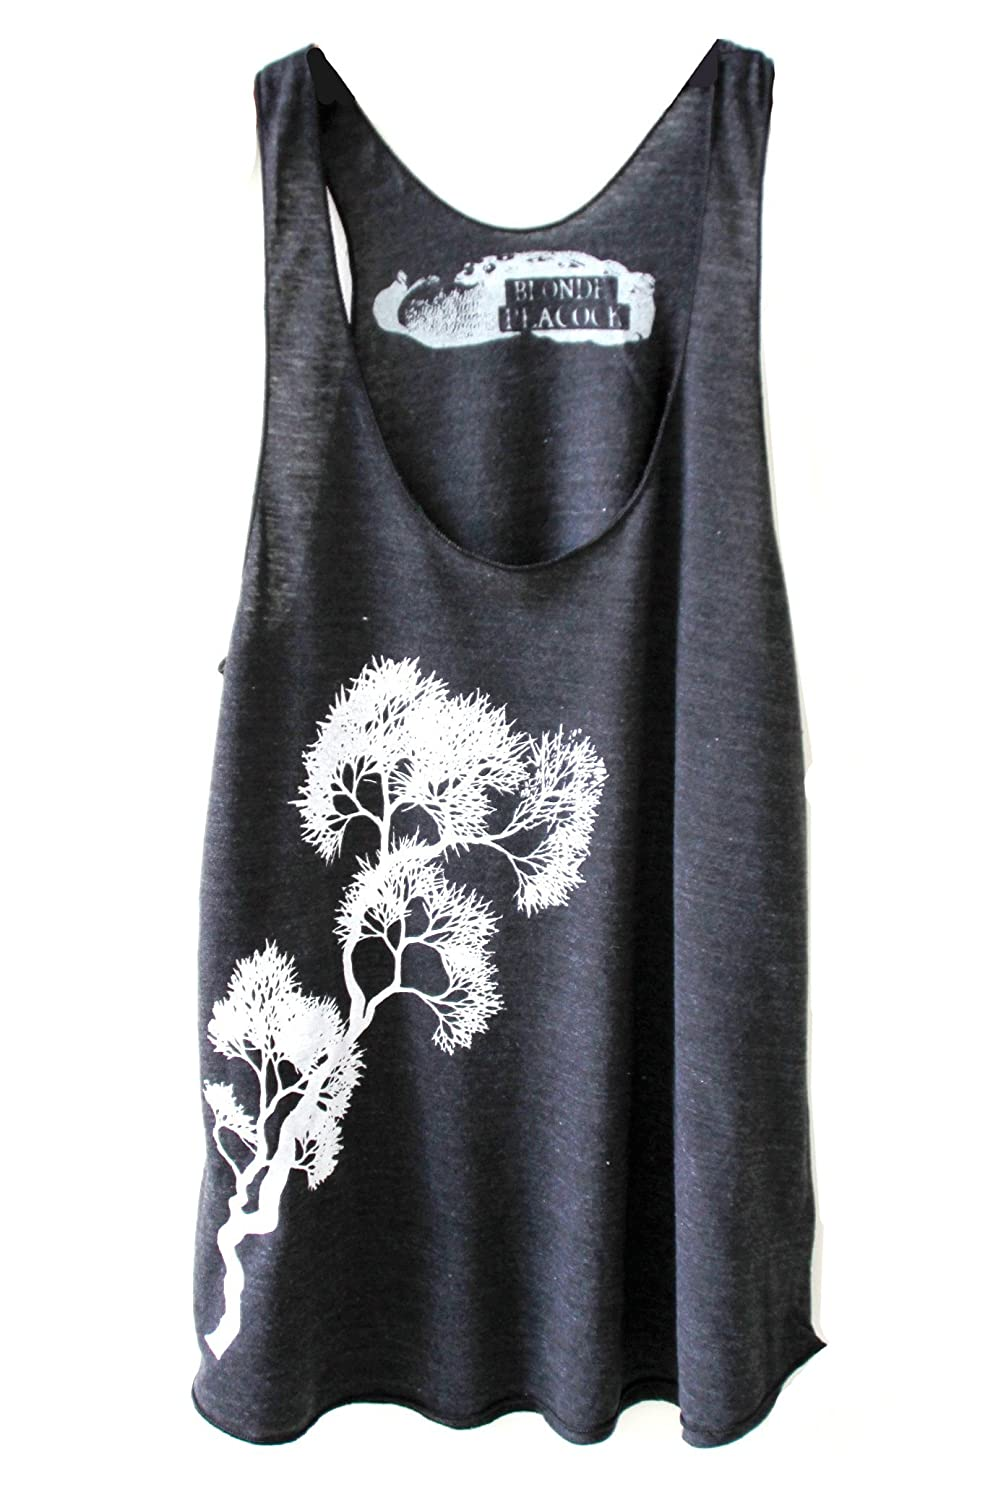 Women's Black and White Tree Branch Design Loose Fit Racerback Yoga Tank Top